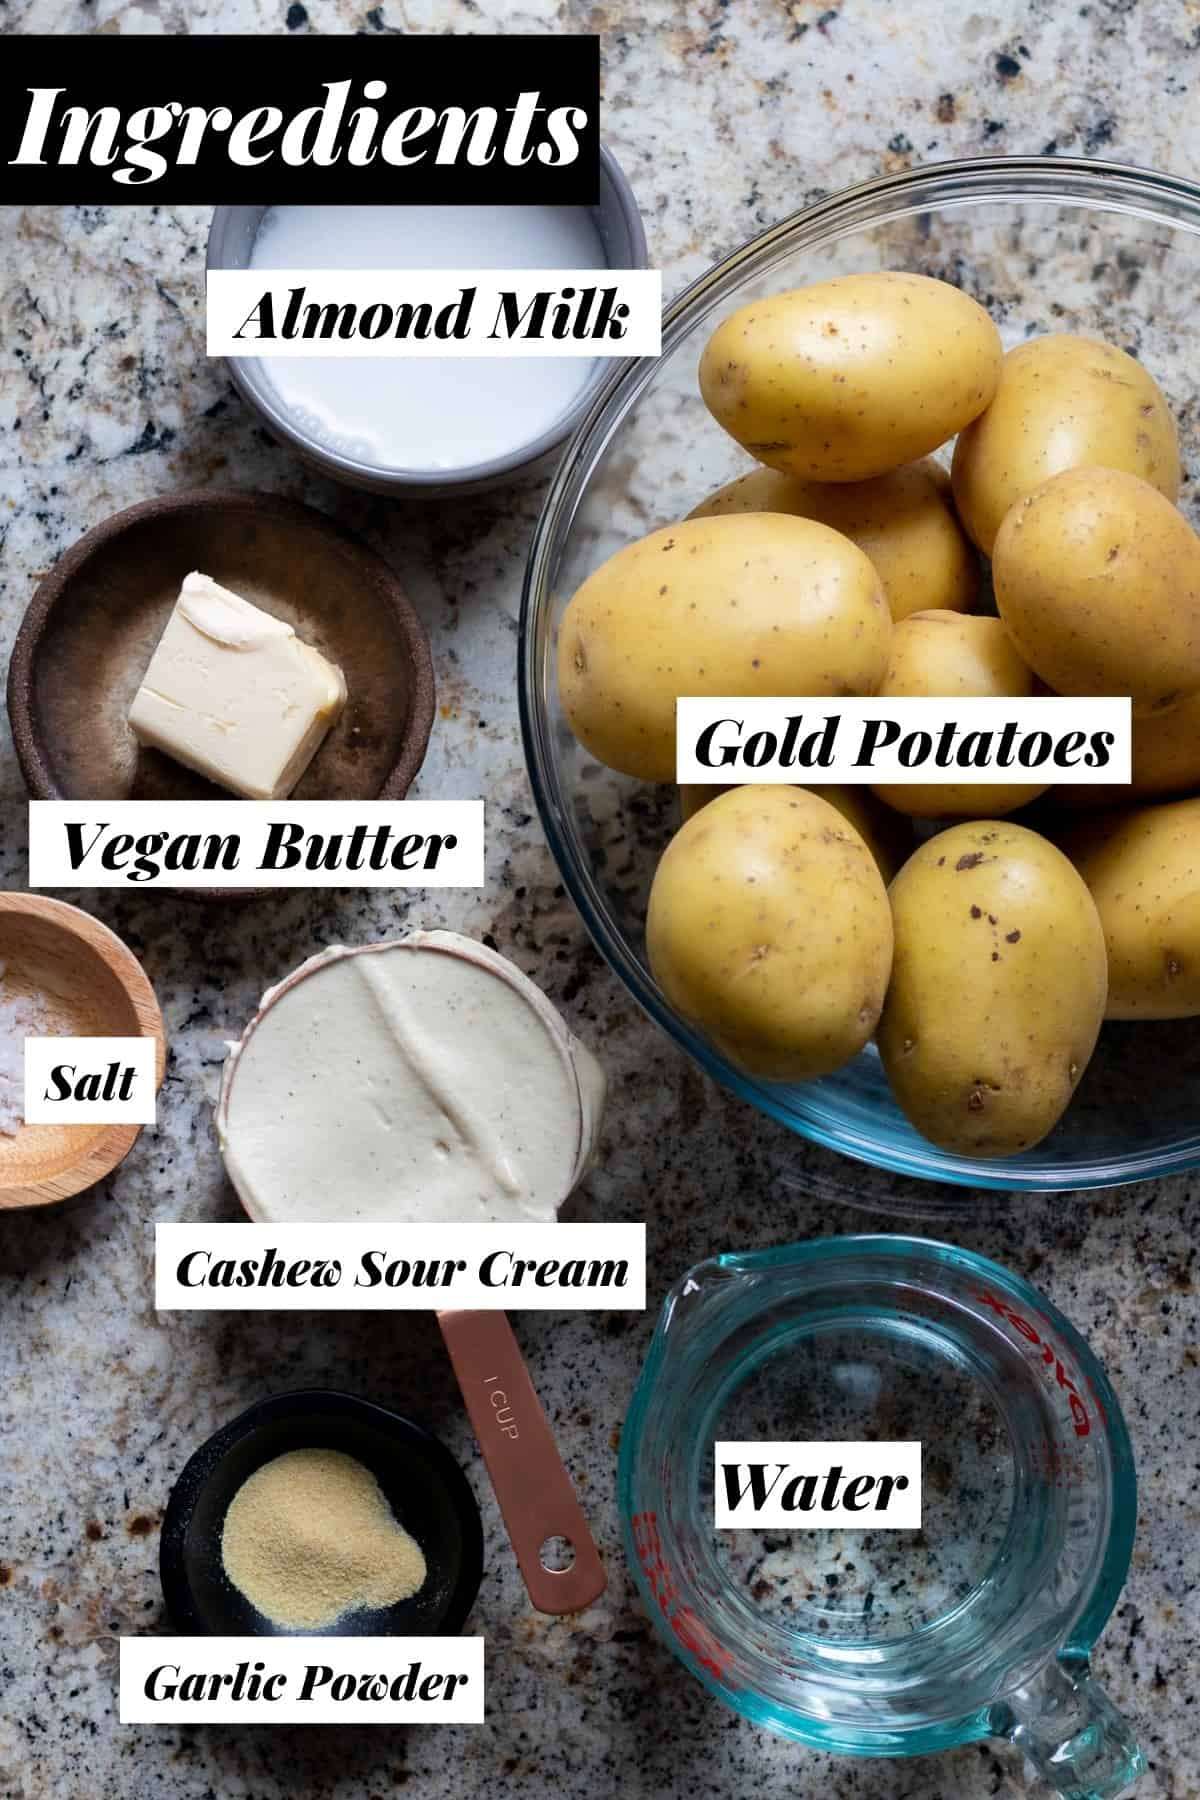 Recipe ingredients measured out into bowls with labels.